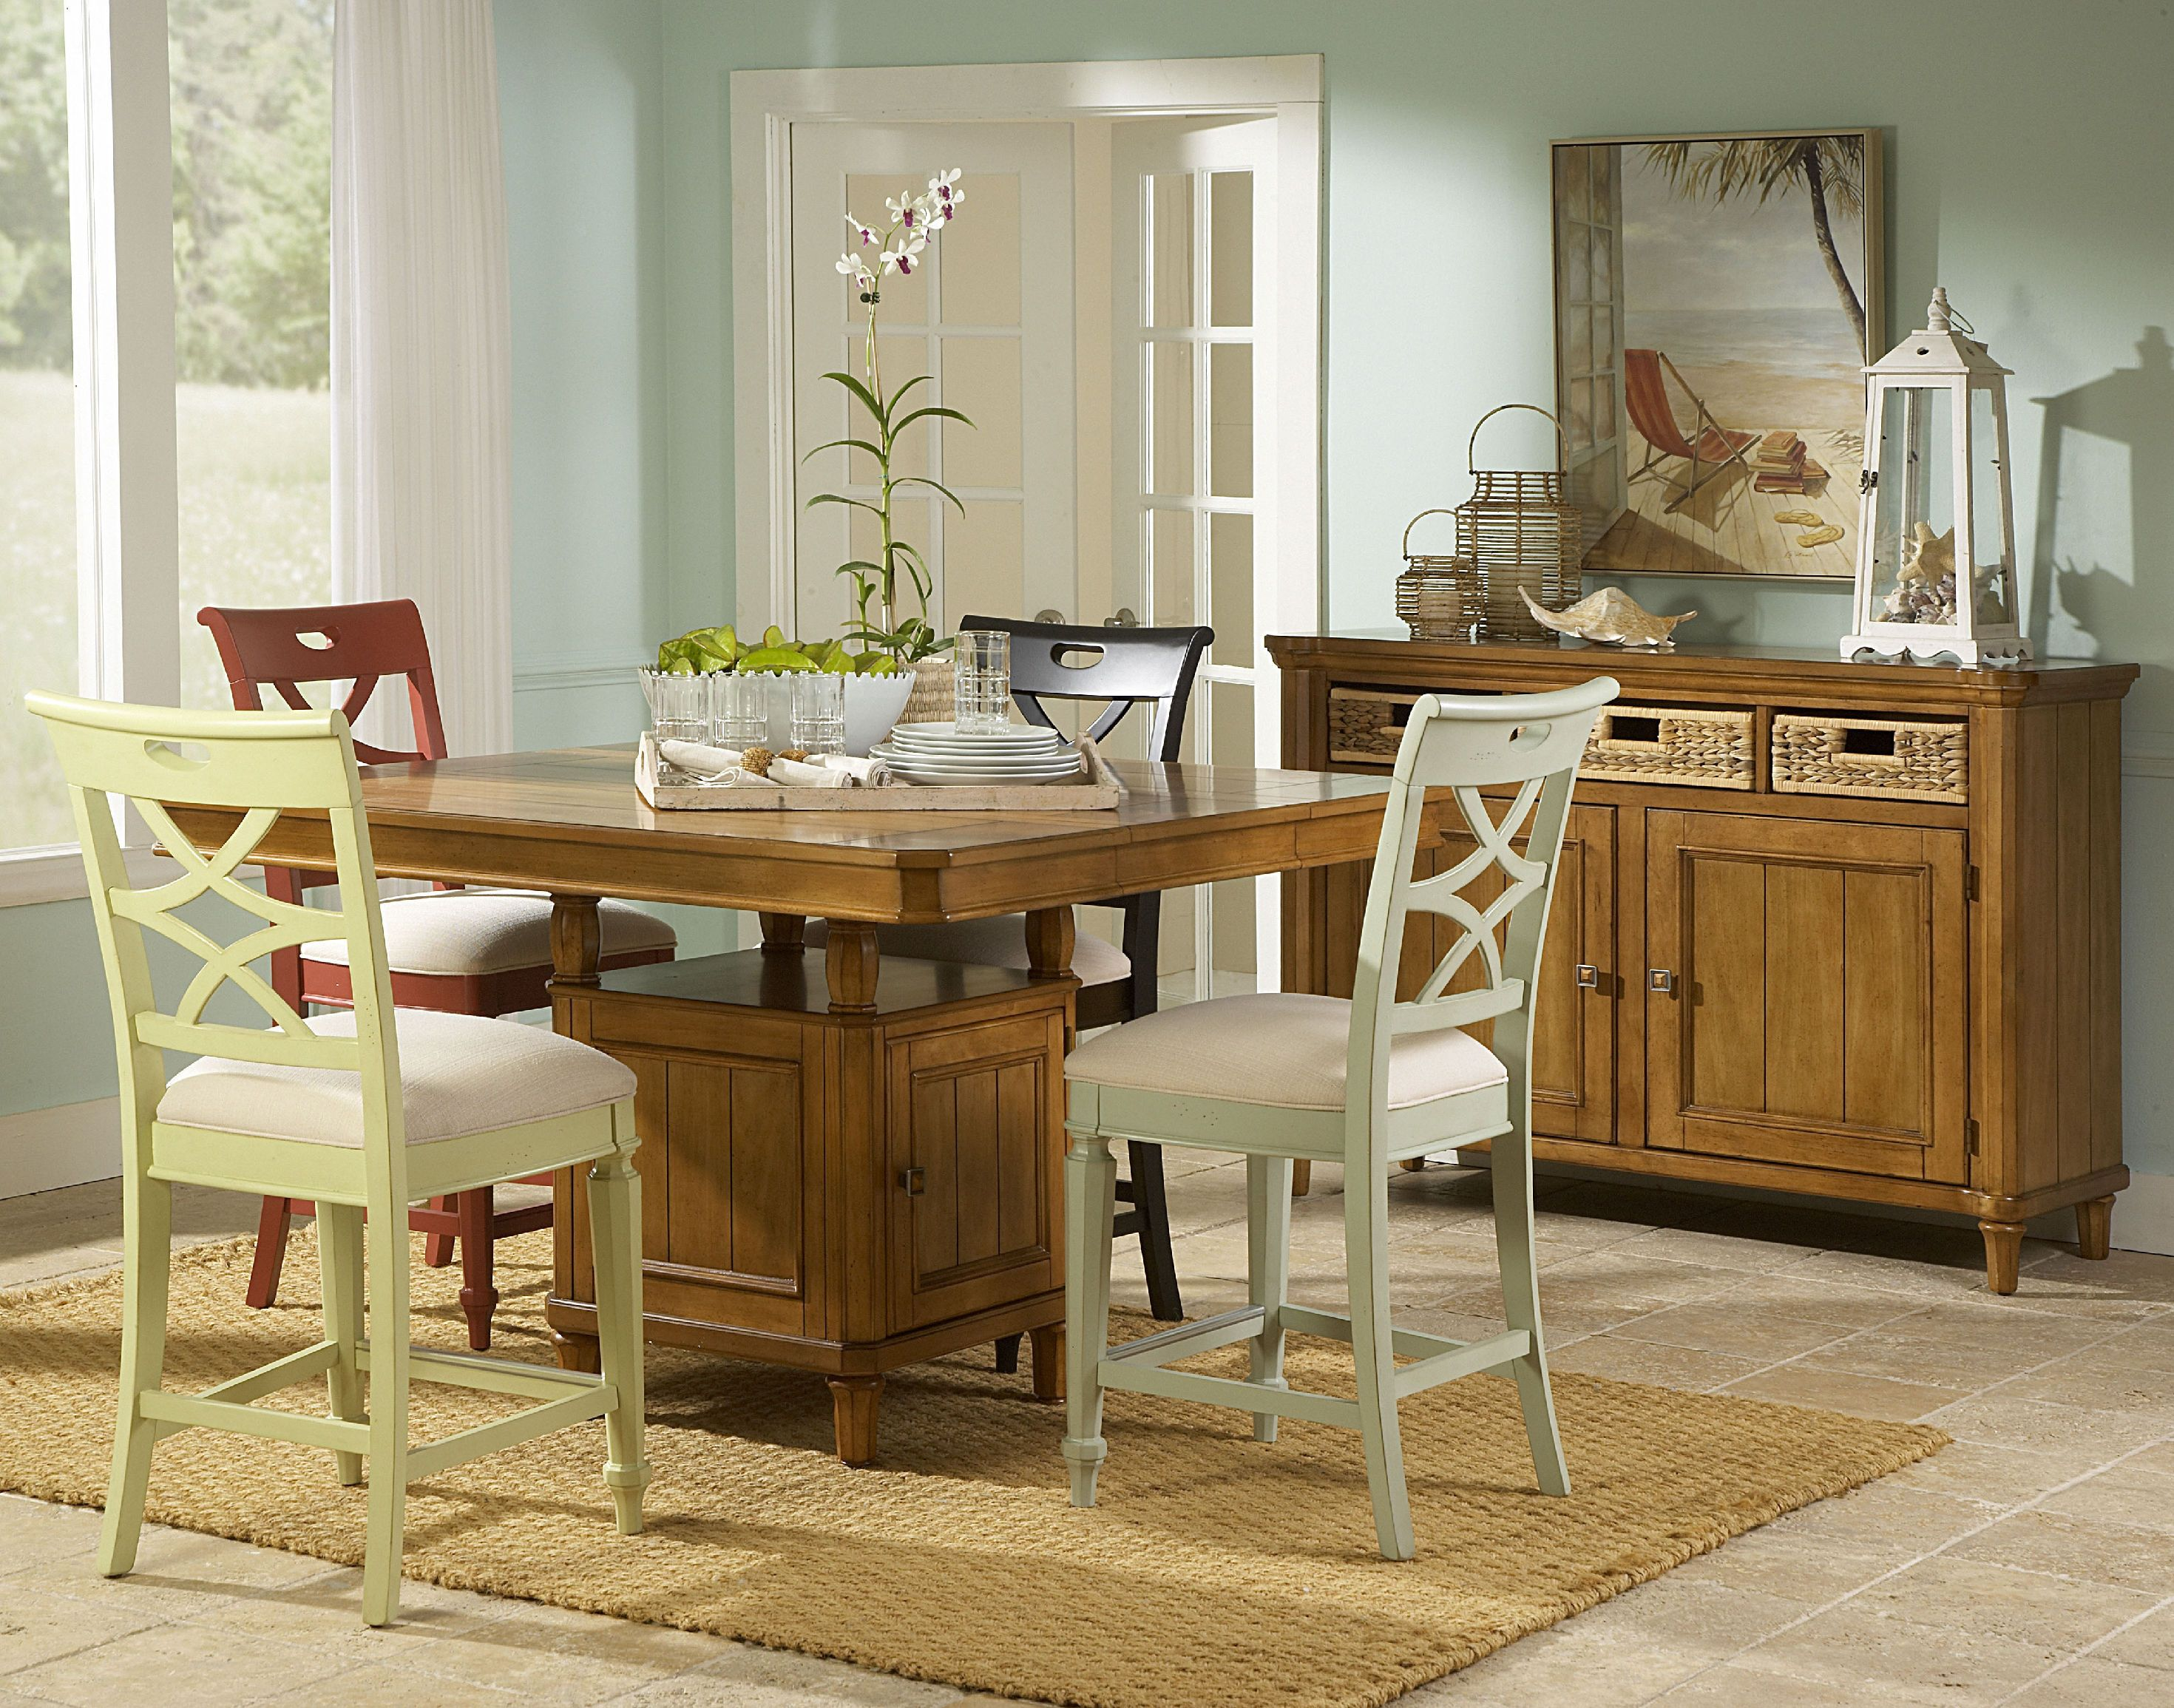 ART Furniture Grand Shores Dining Room 145200   The Village Shoppe   Yakima,  WA